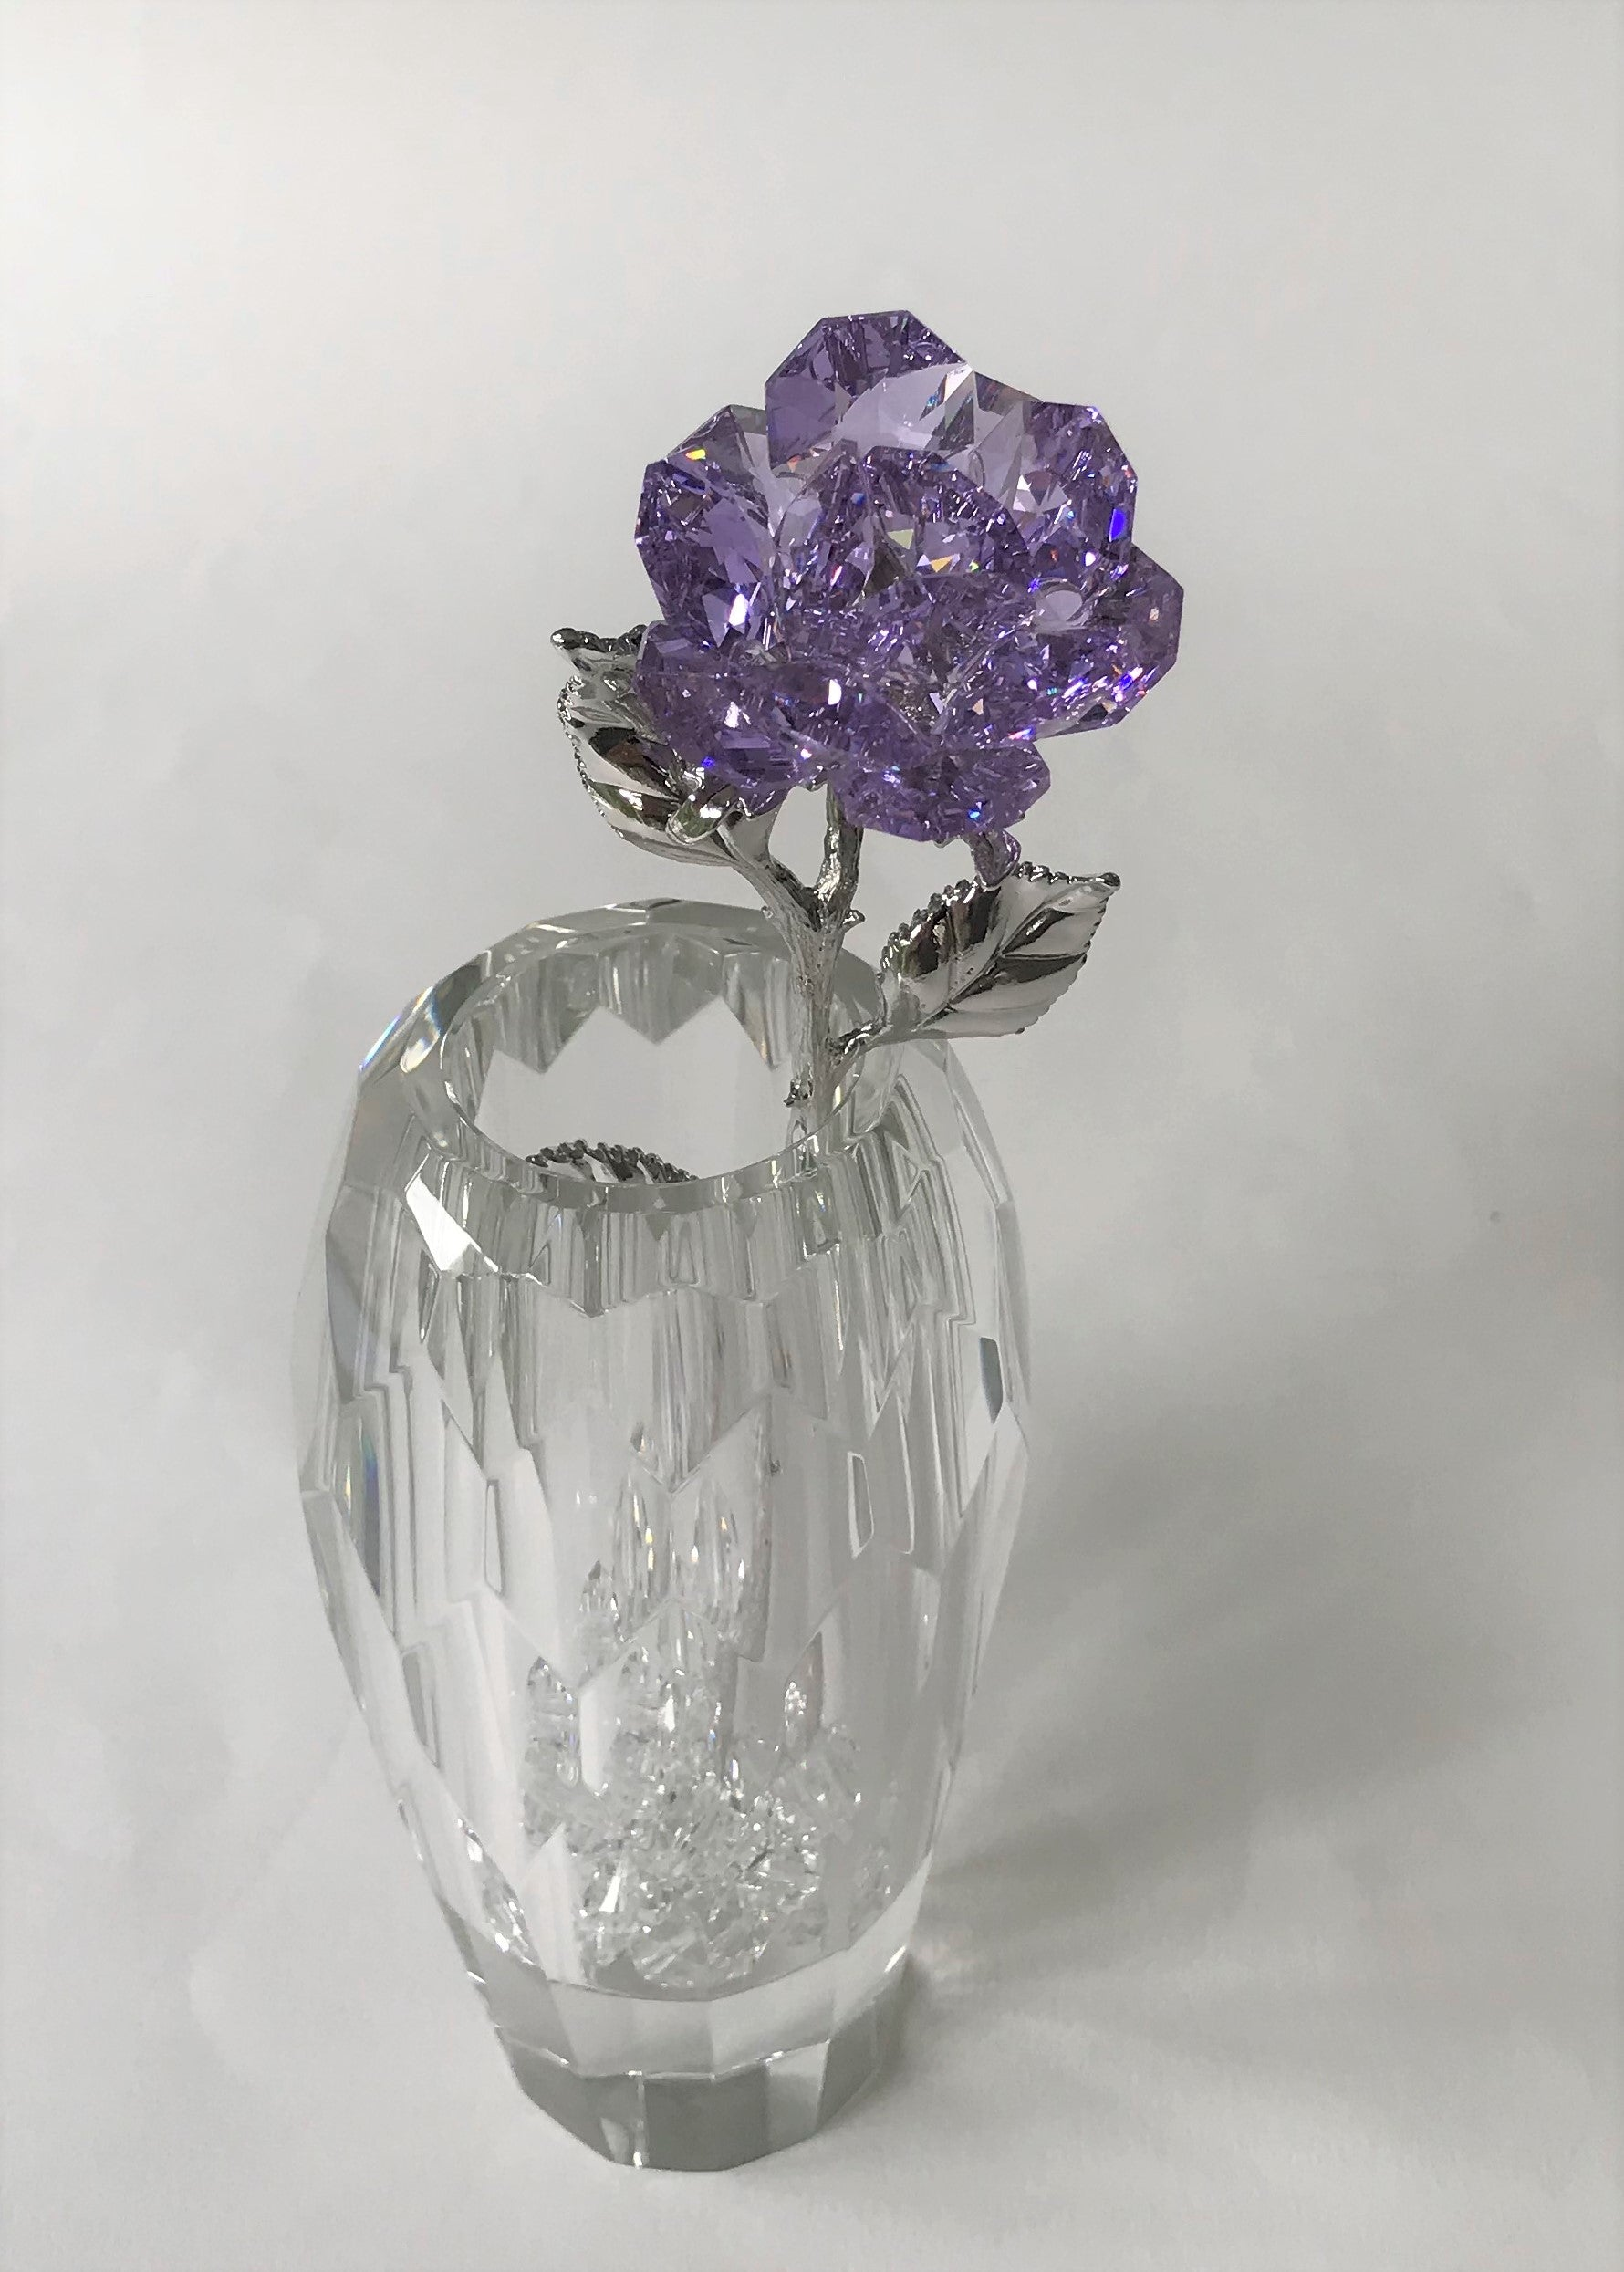 Purple Crystal Rose Handcrafted By Bjcrystalgifts Using Swarovski Crystals In A Faceted Crystal Vase